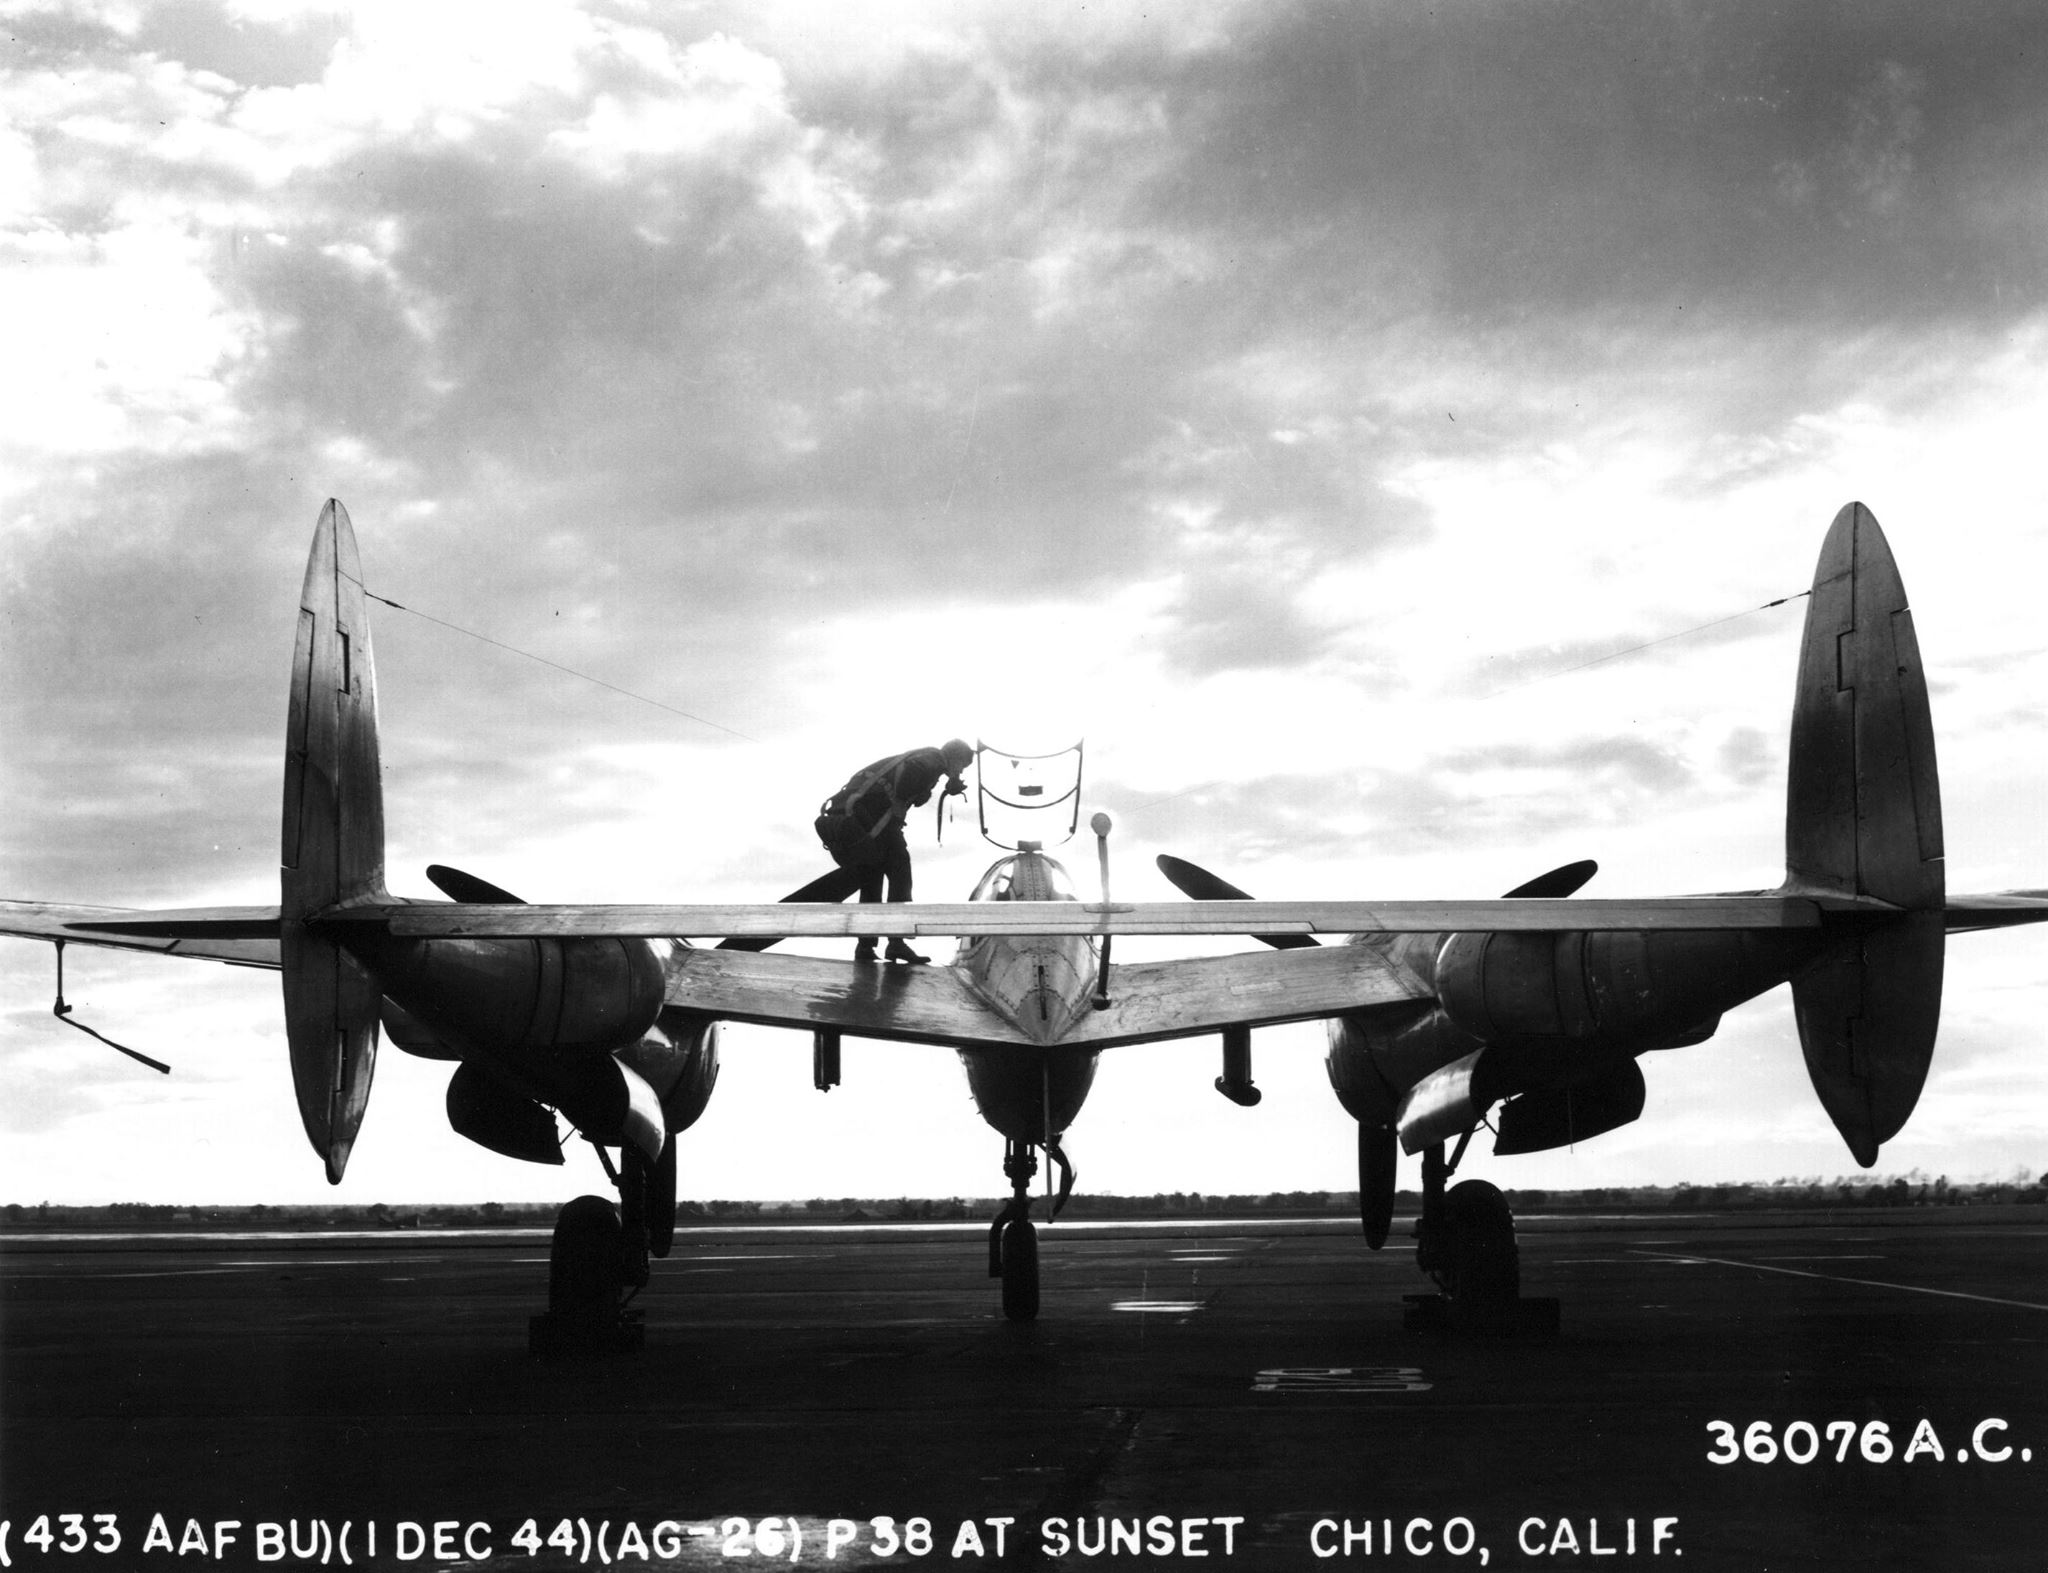 A different view of the classic P-38.